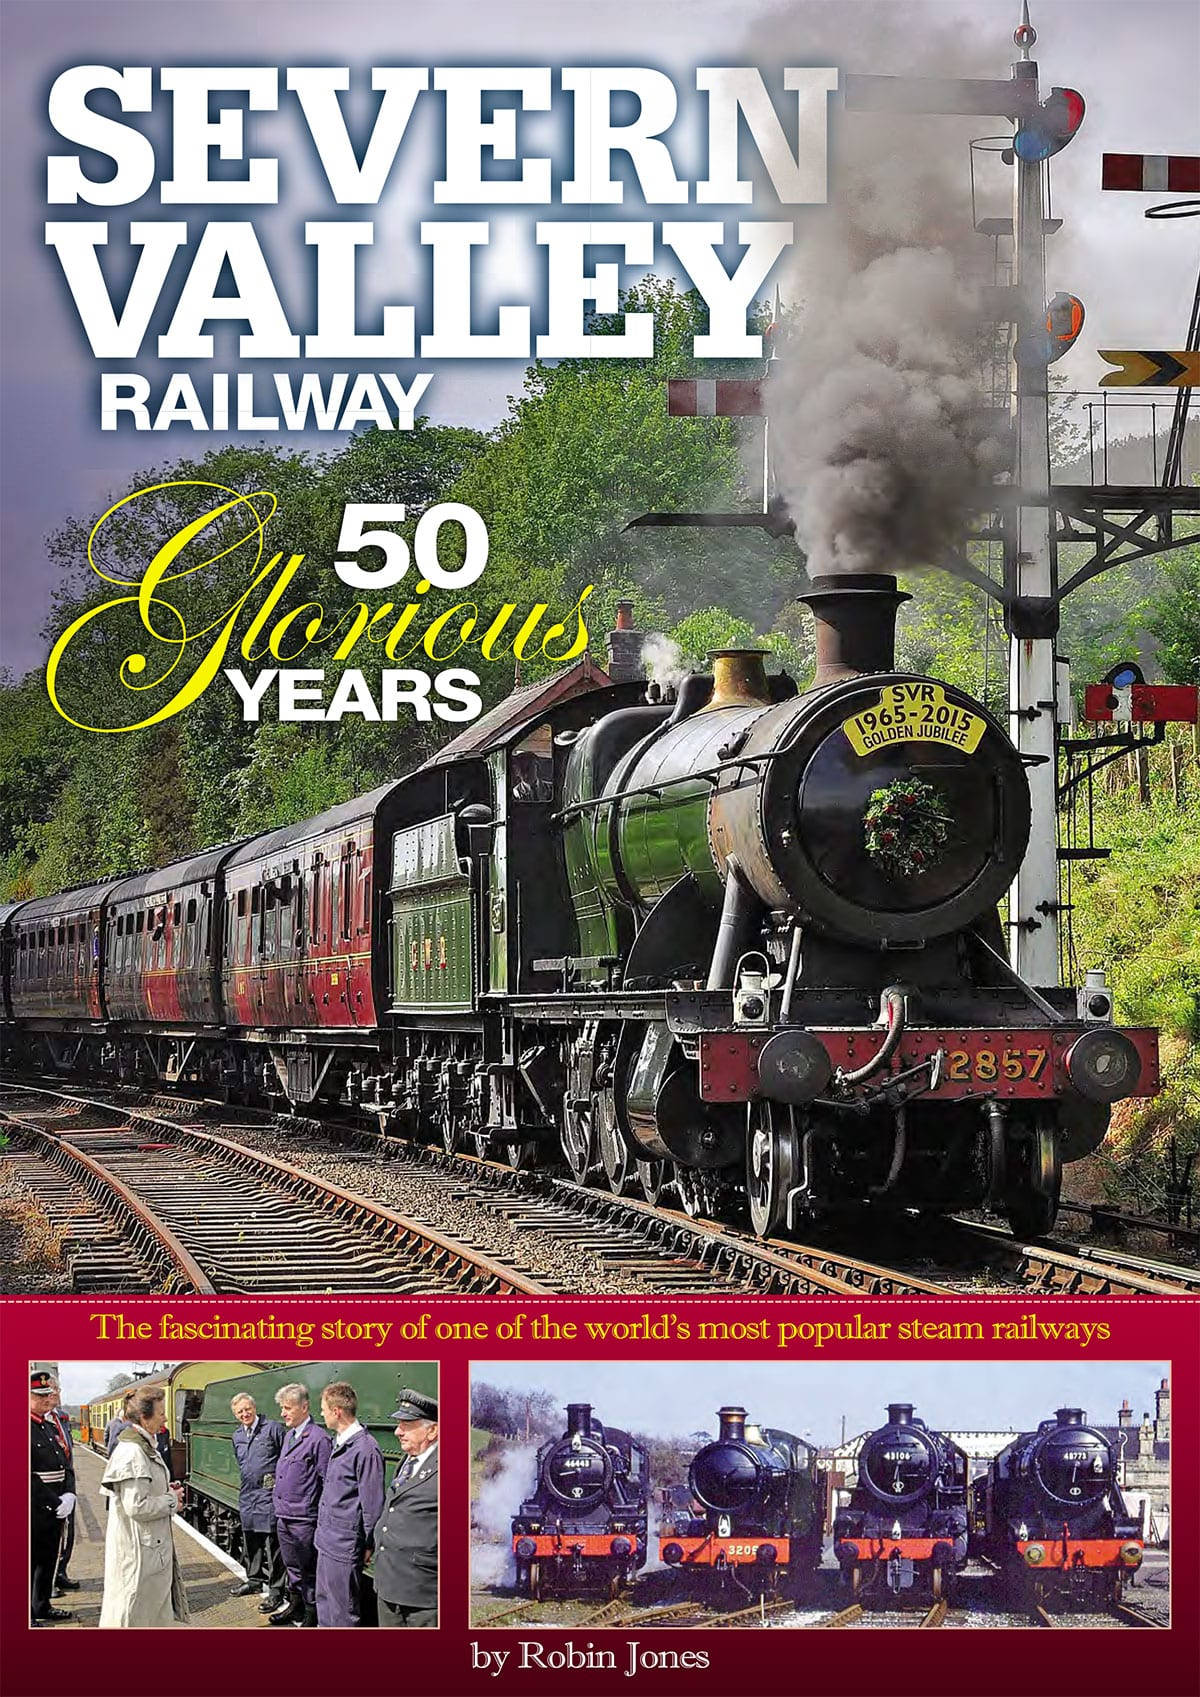 Severn Valley Railway - 50 Glorious Years